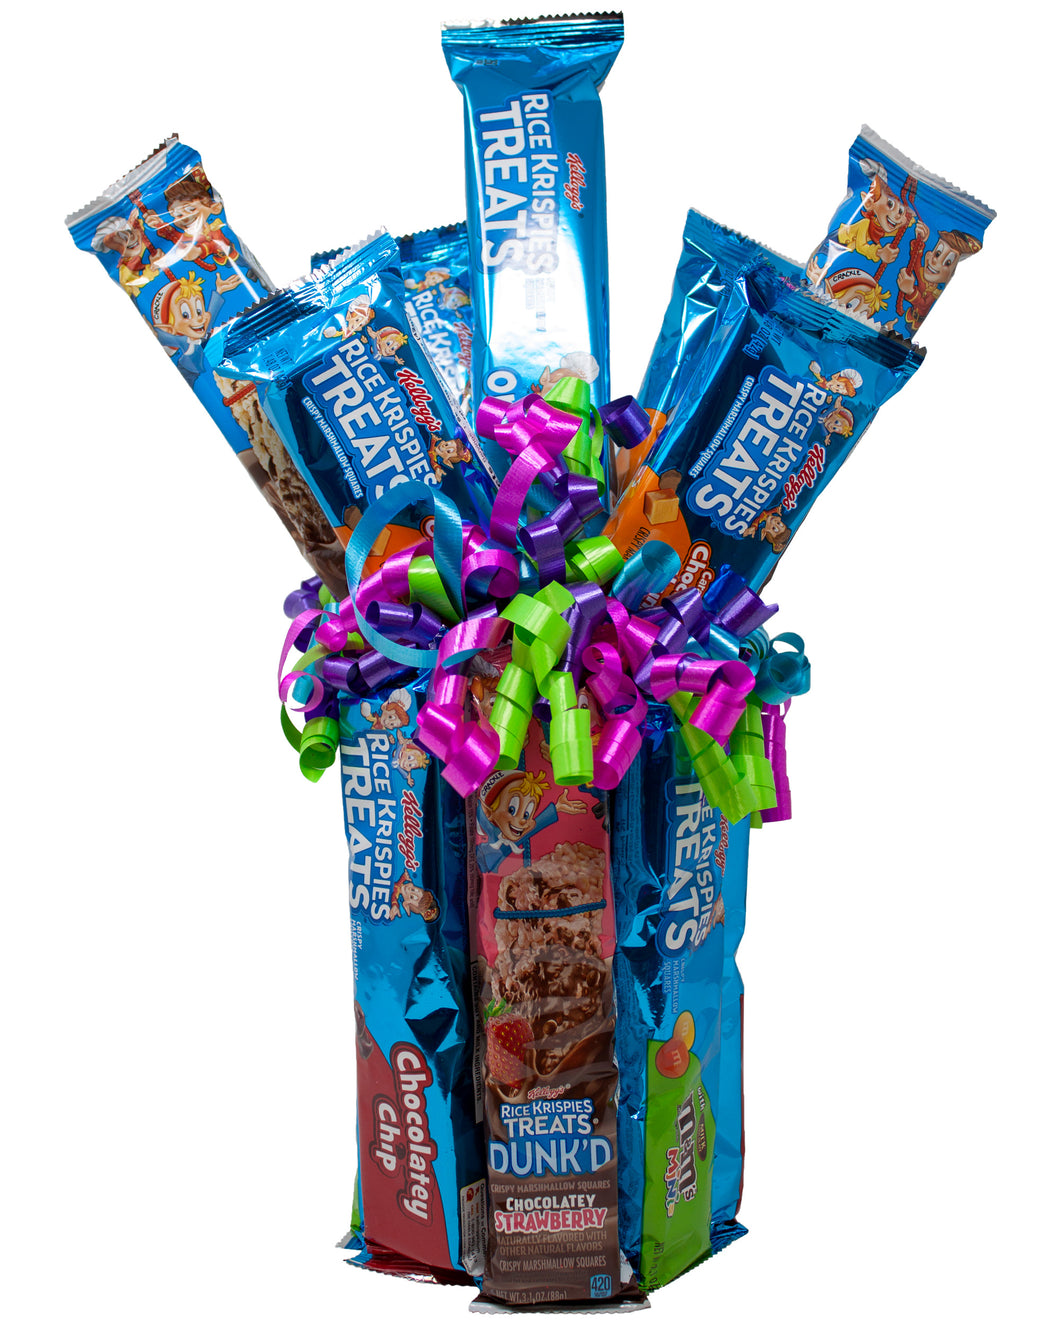 Rice Krispies Treats Sweet Bouquet Featuring the New Dunk'd Flavors